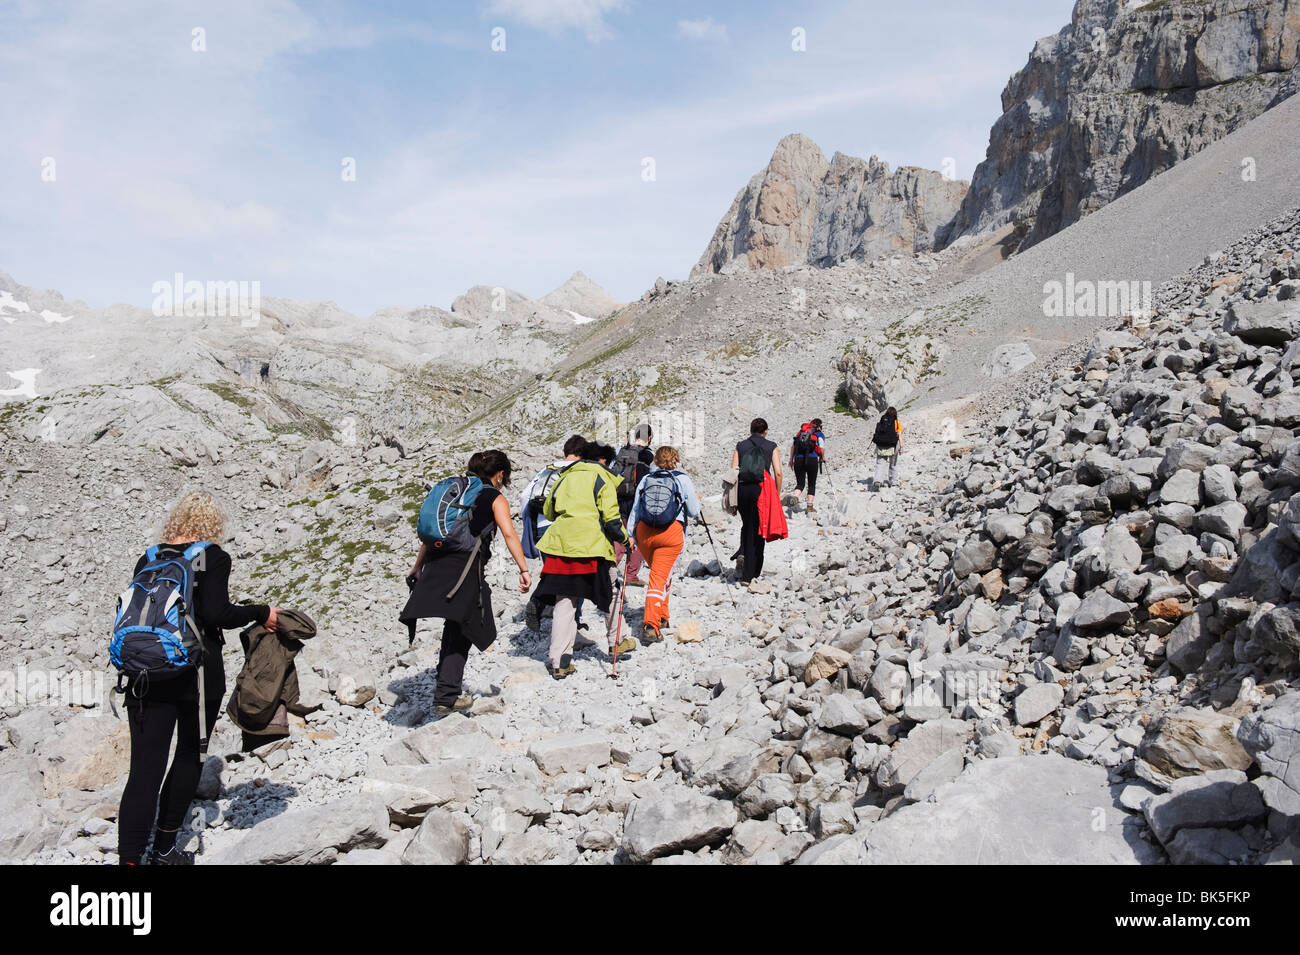 Hikers in Picos de Europa National Park, shared by the provinces of Asturias, Cantabria and Leon, Spain, Europe - Stock Image